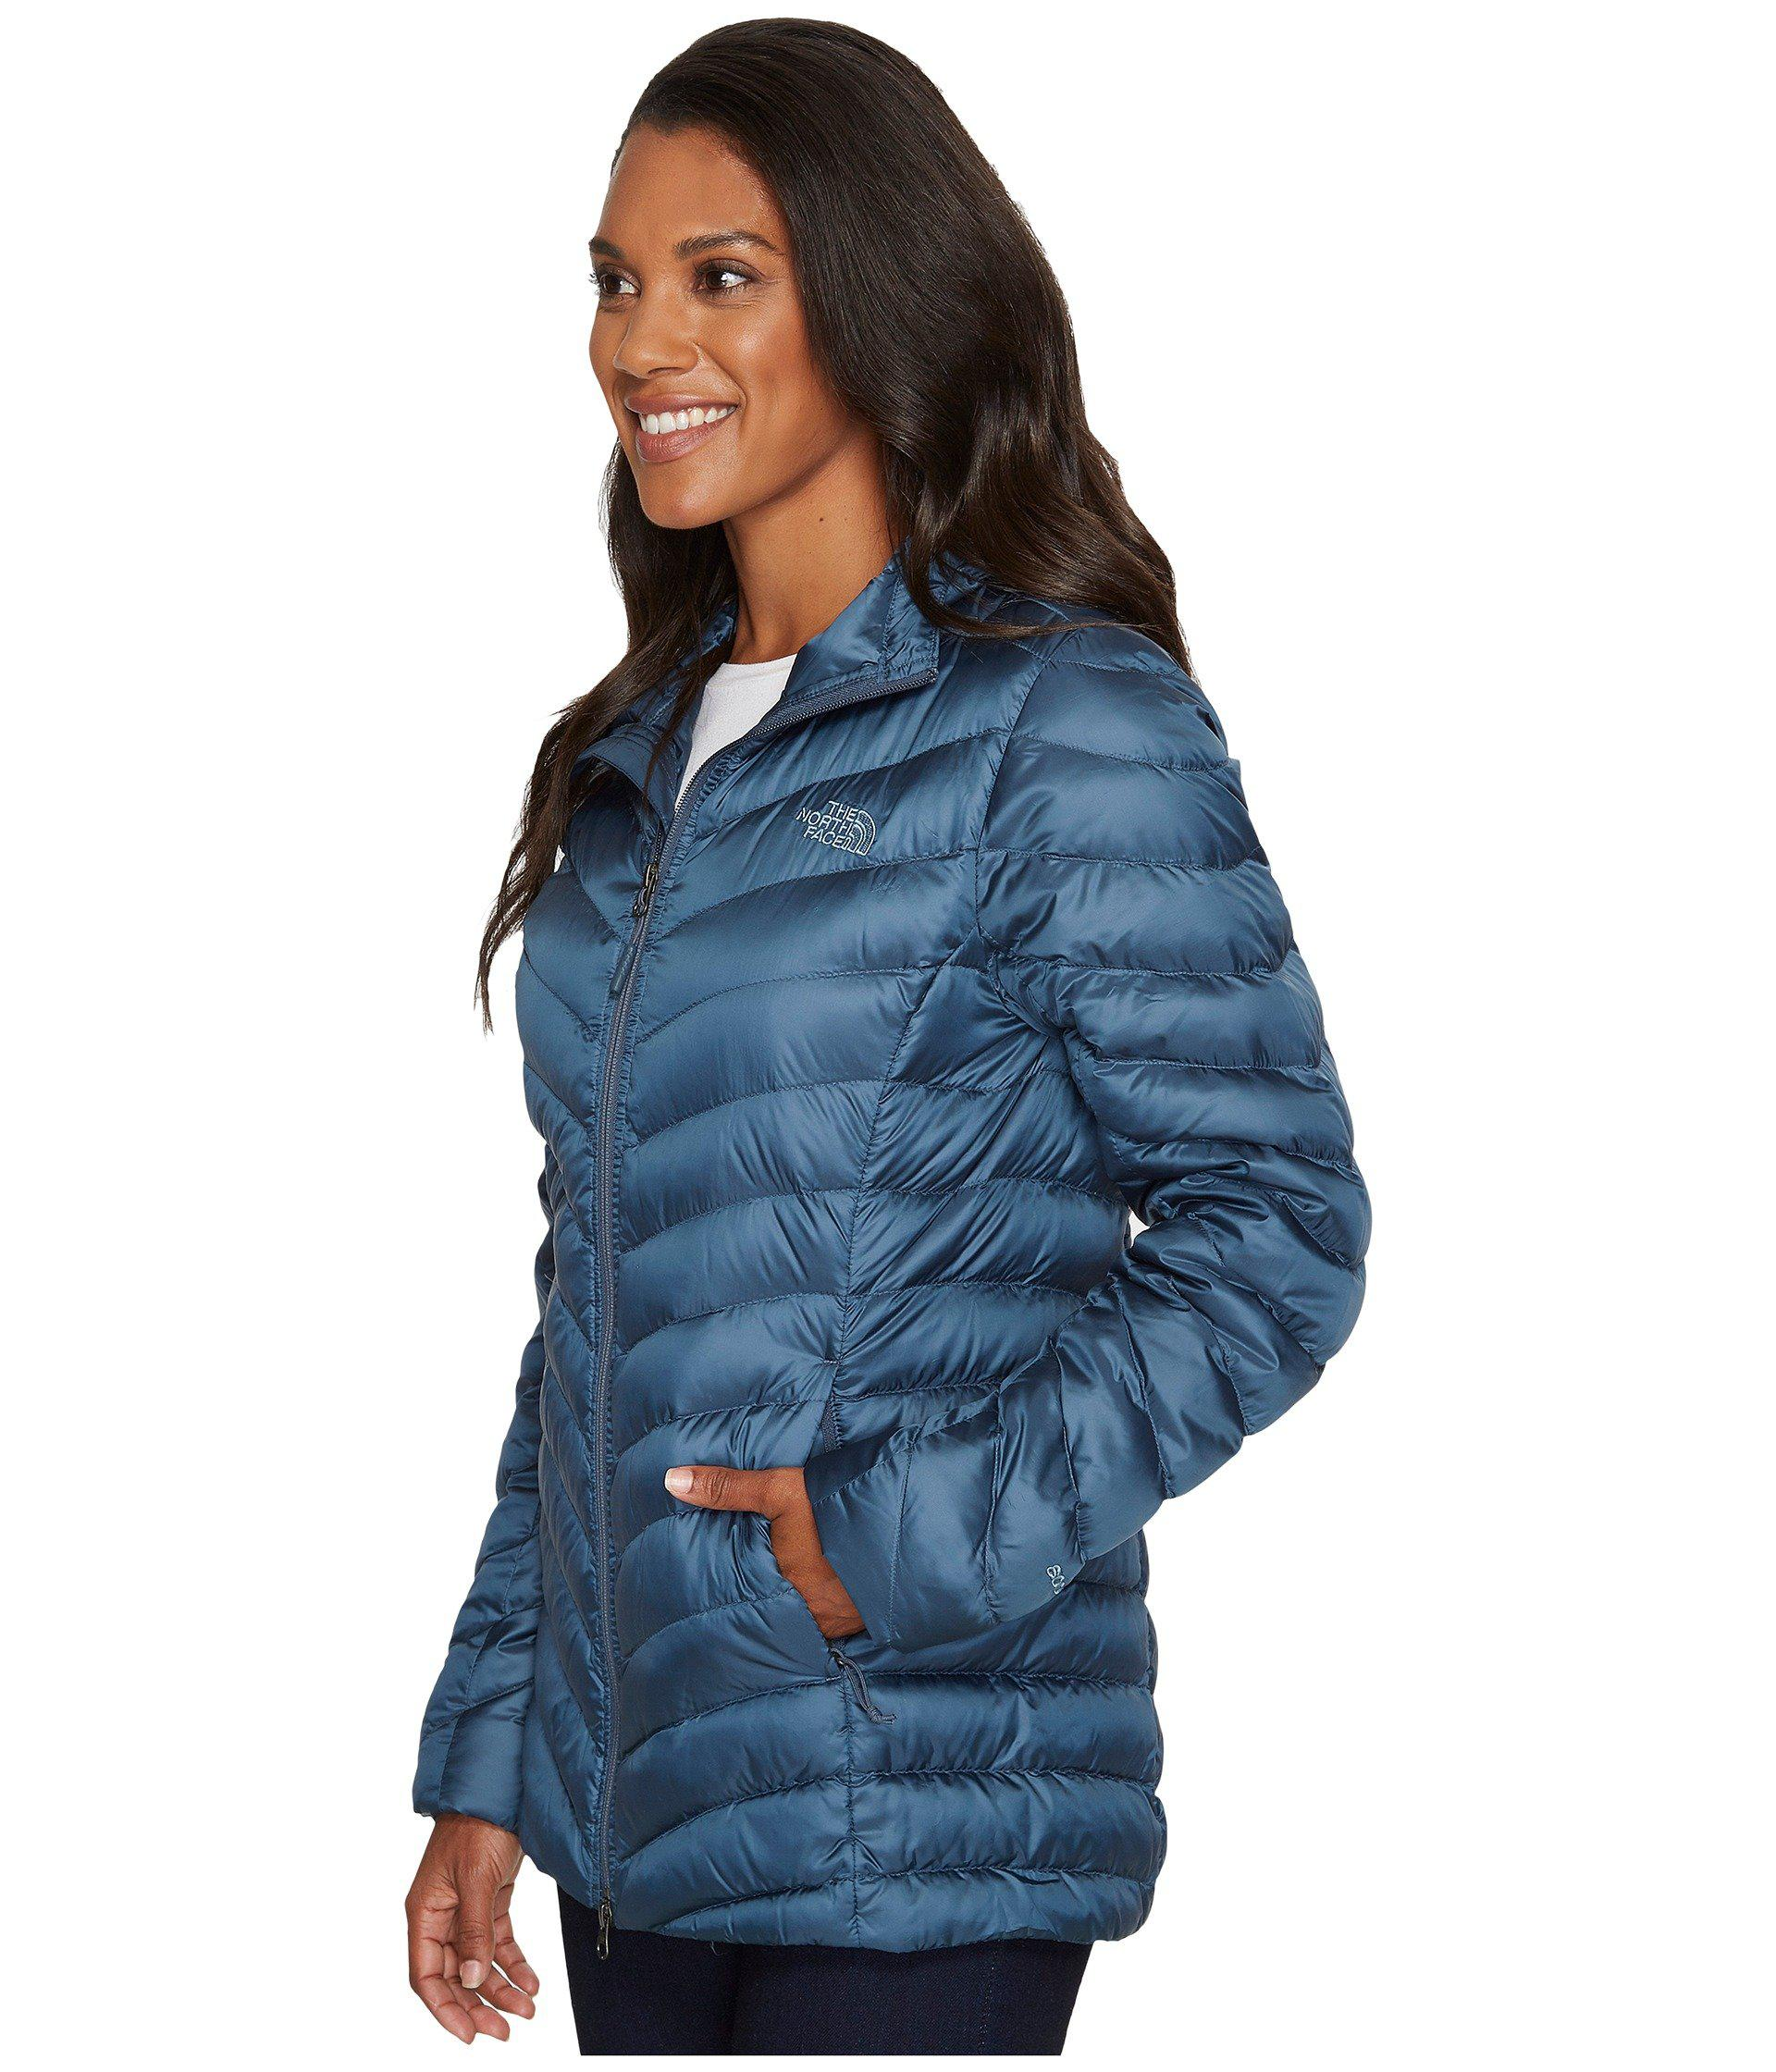 2f18e5c848 Lyst - The North Face Trevail Parka in Blue - Save 29%